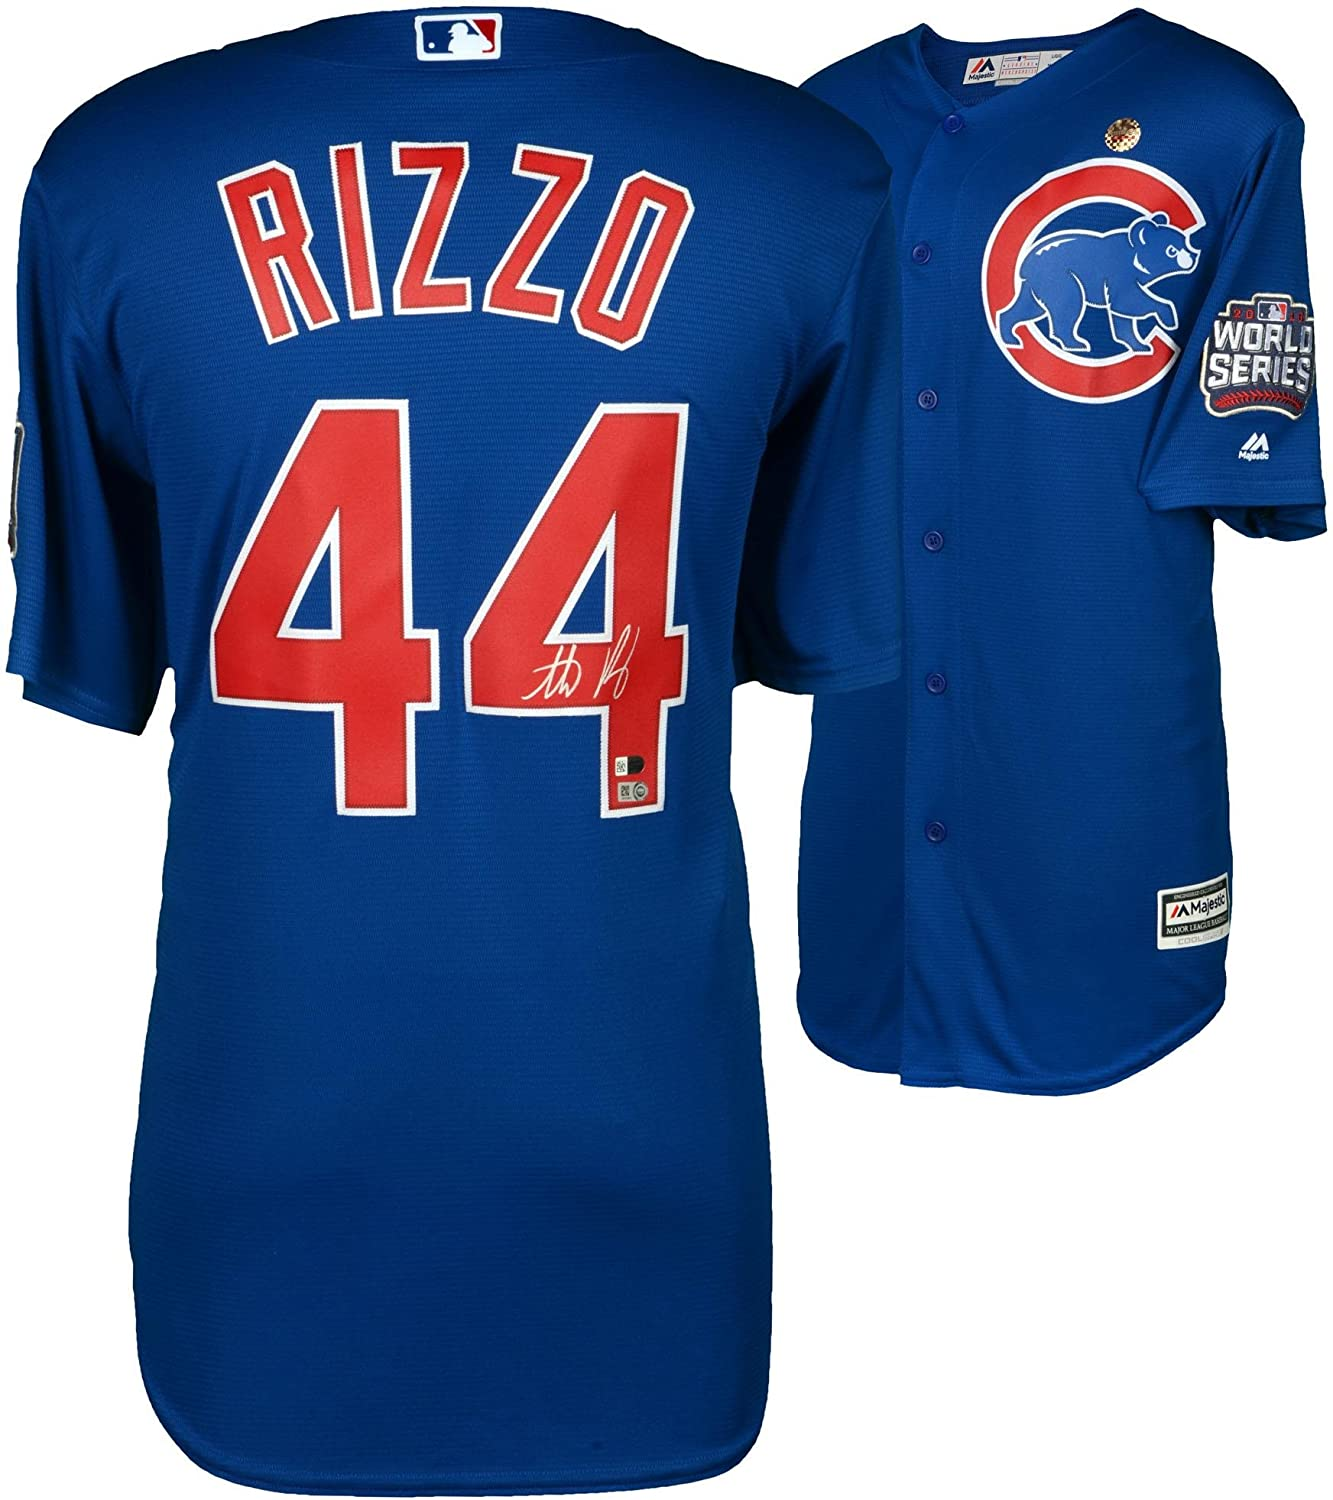 new styles b1ad7 23313 Anthony Rizzo Chicago Cubs 2016 MLB World Series Champions ...